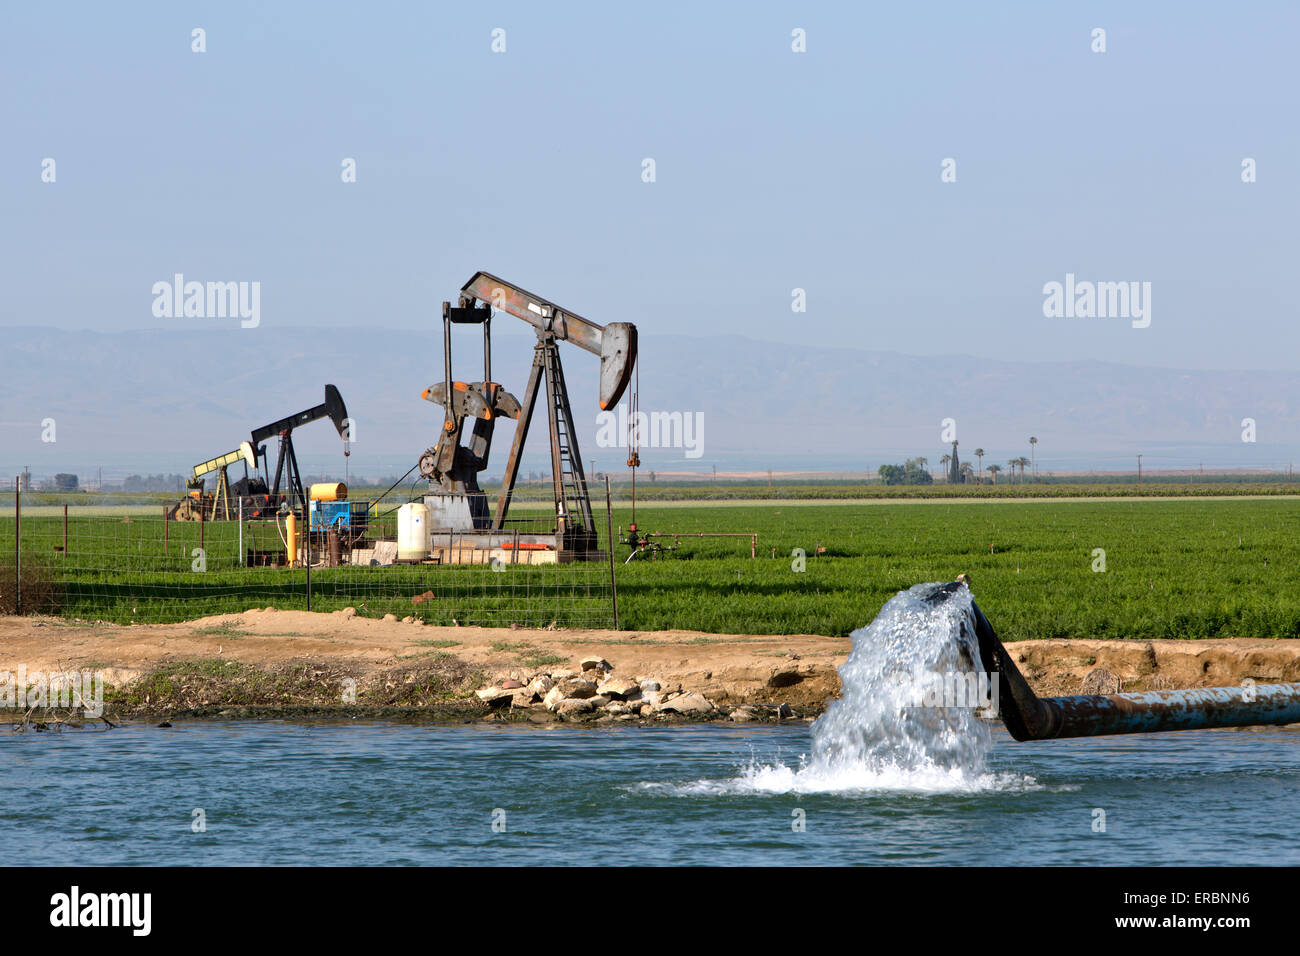 Donkey pumps operating in carrot field, irrigation pond. - Stock Image